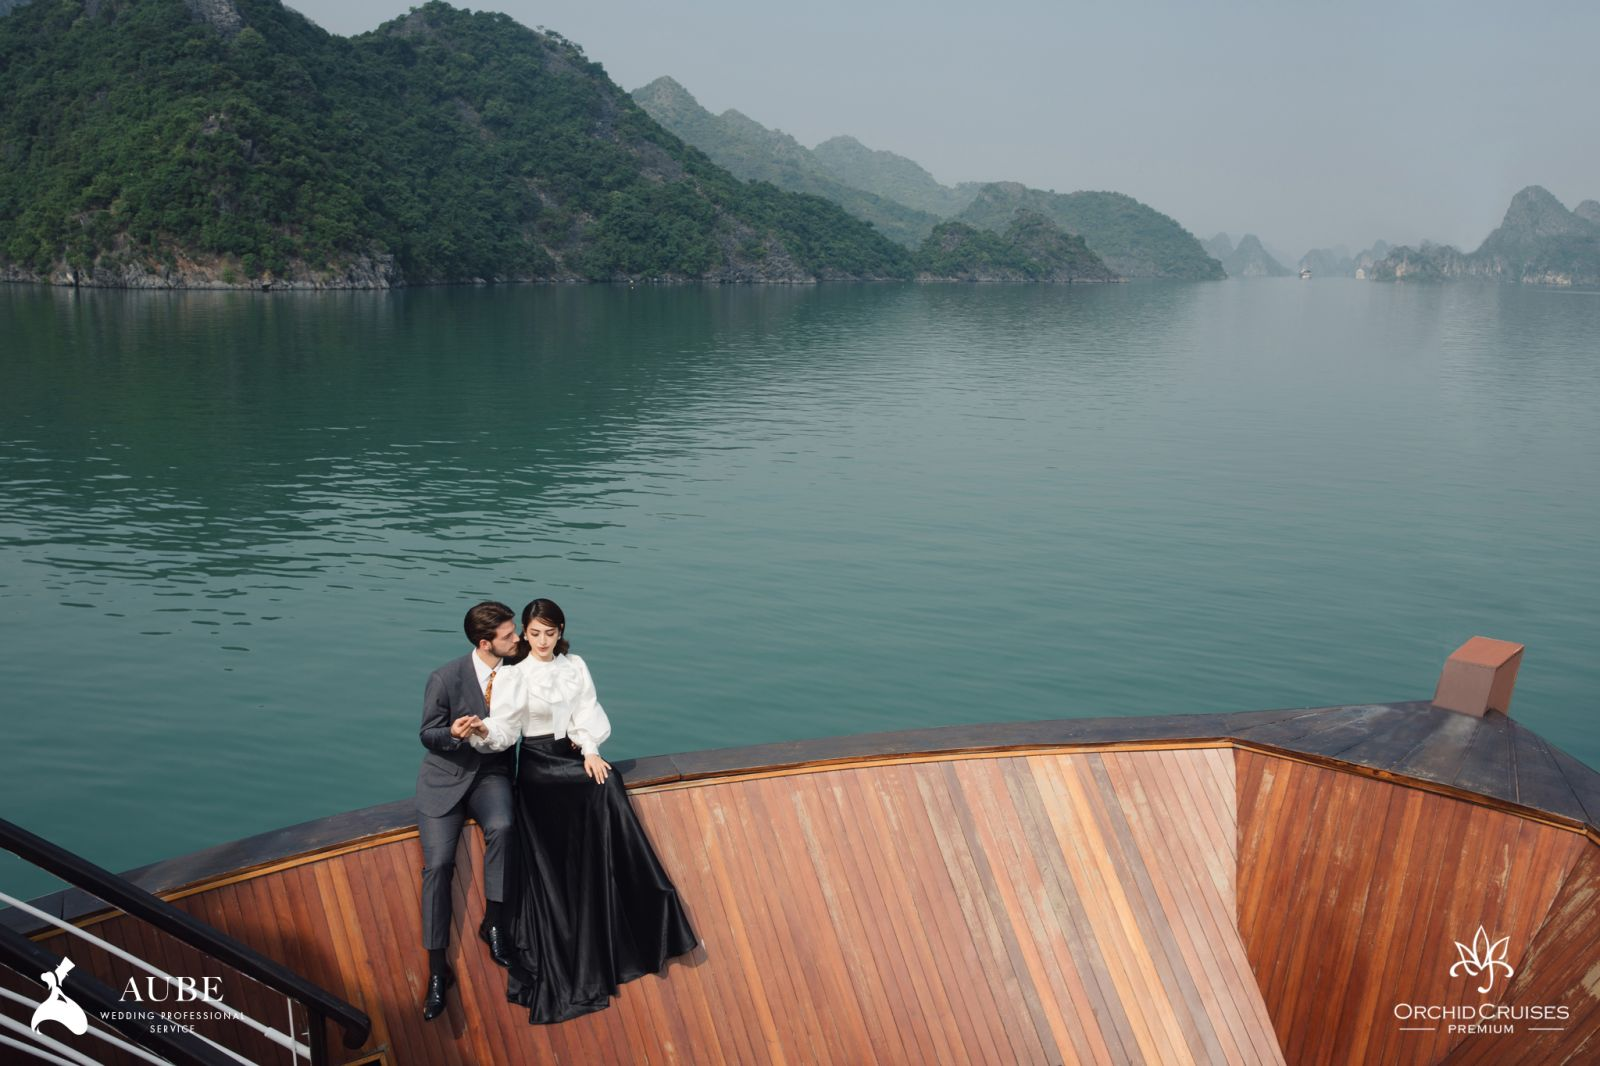 Orchid Cruises, Orchid Premium Cruises, ảnh cưới, du thuyền, private party